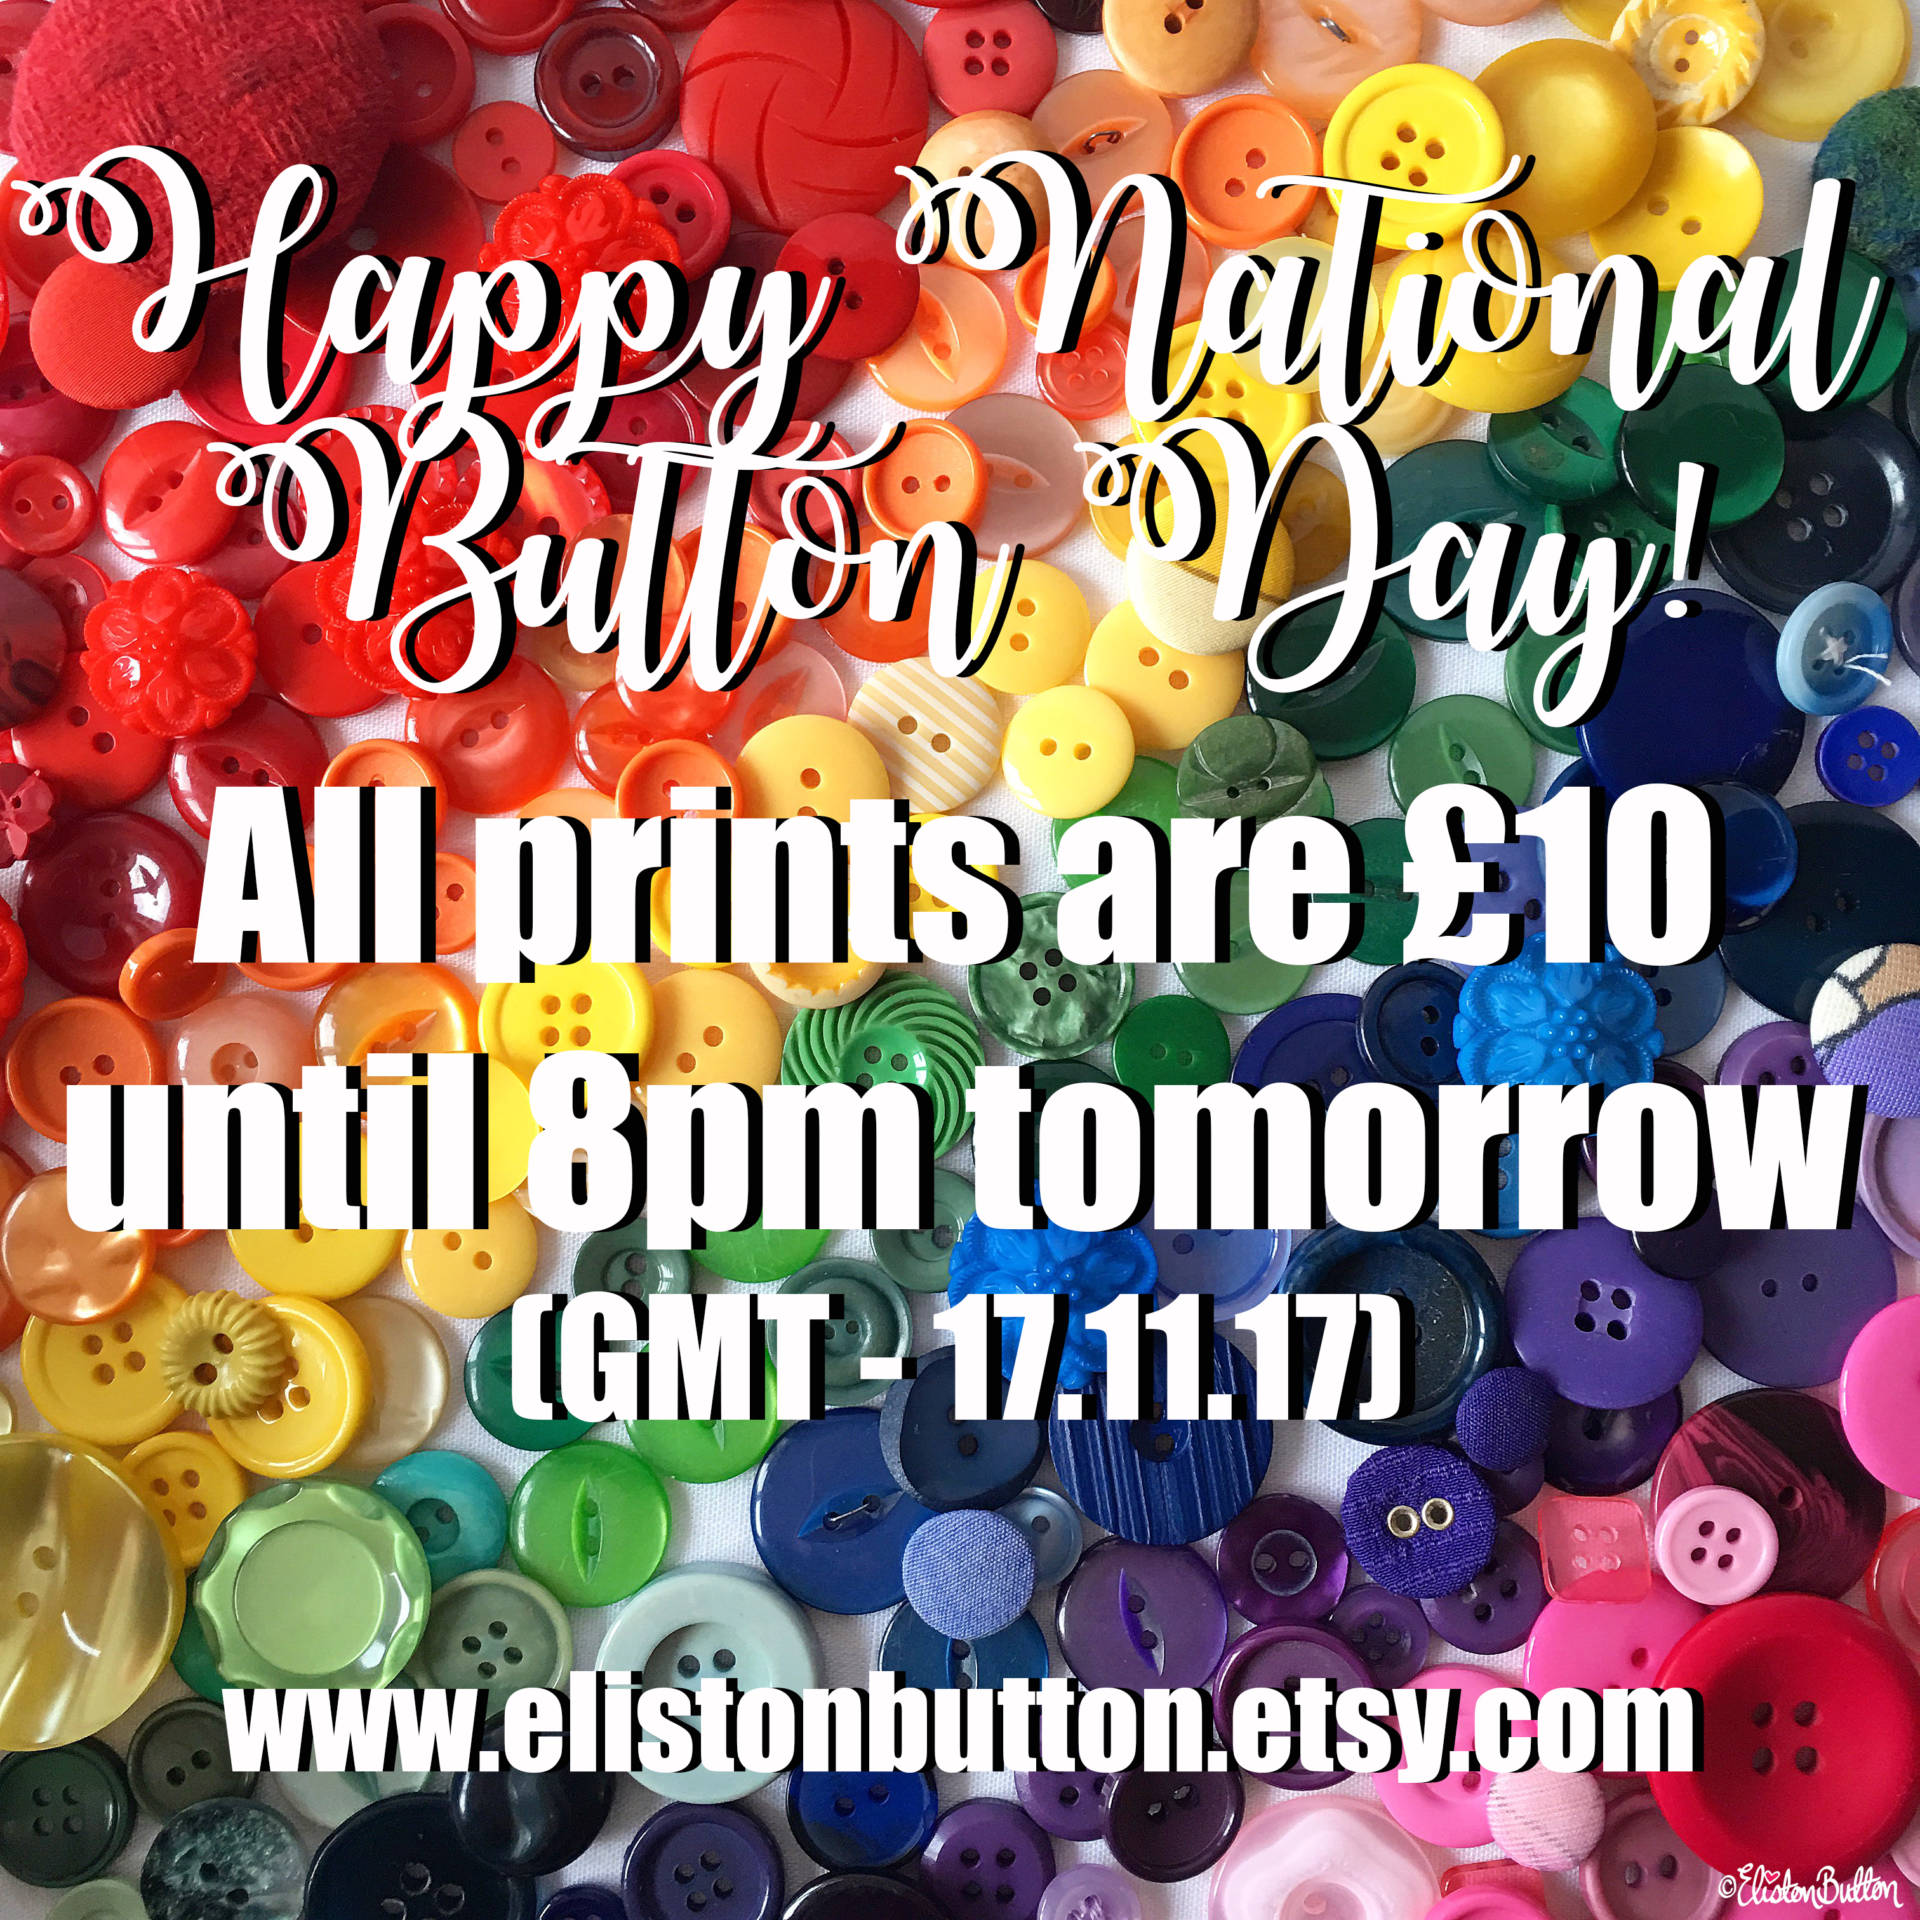 National Button Day Promotion - New Fabric Collage and Shooting Star Prints at www.elistonbutton.com - Eliston Button - That Crafty Kid – Art, Design, Craft & Adventure.